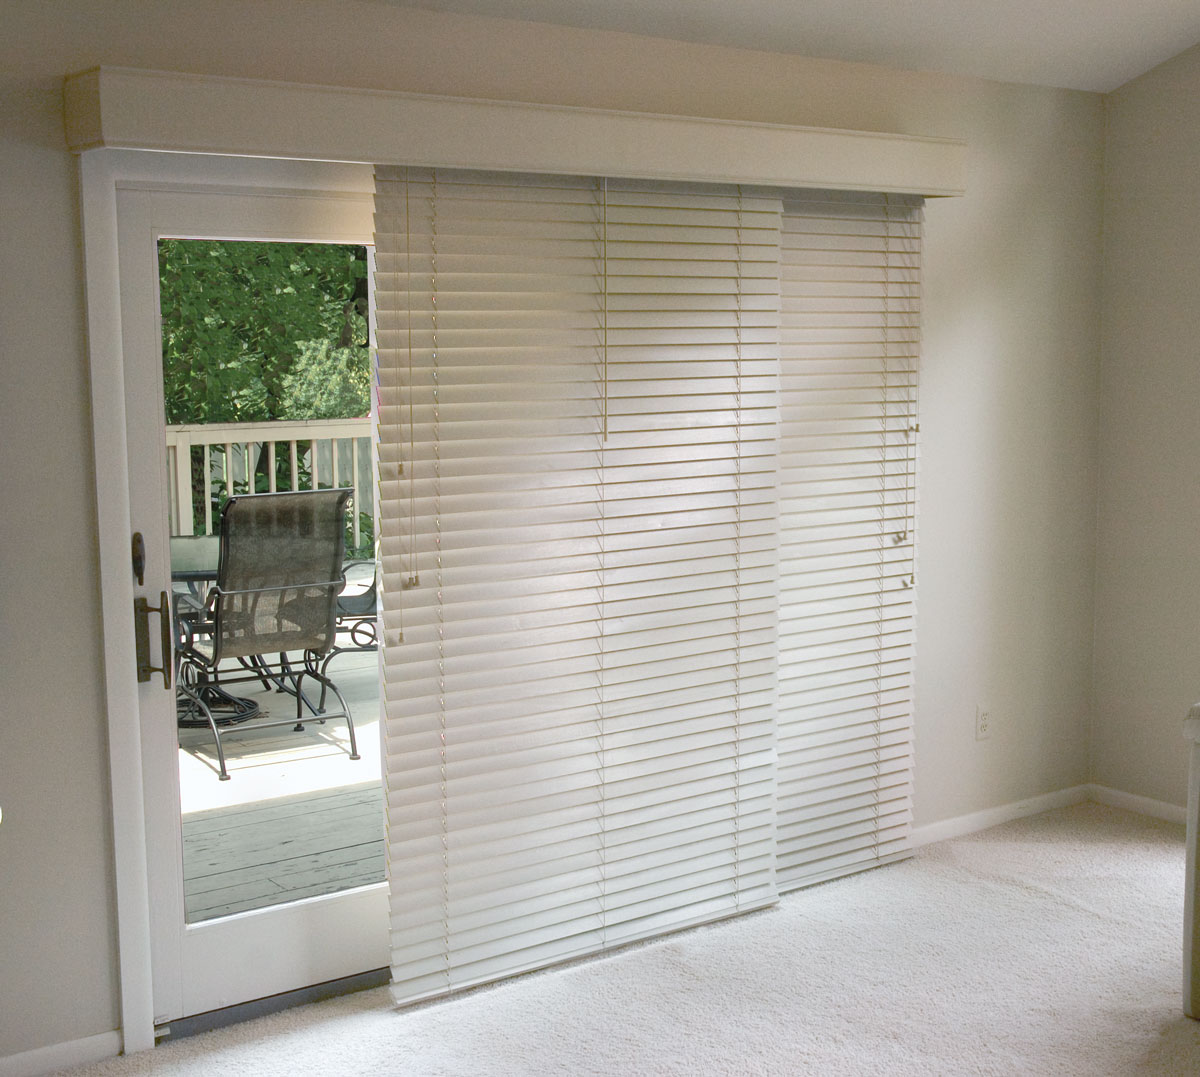 glider blinds horizontal blinds for patio doors - Blinds For Patio Doors